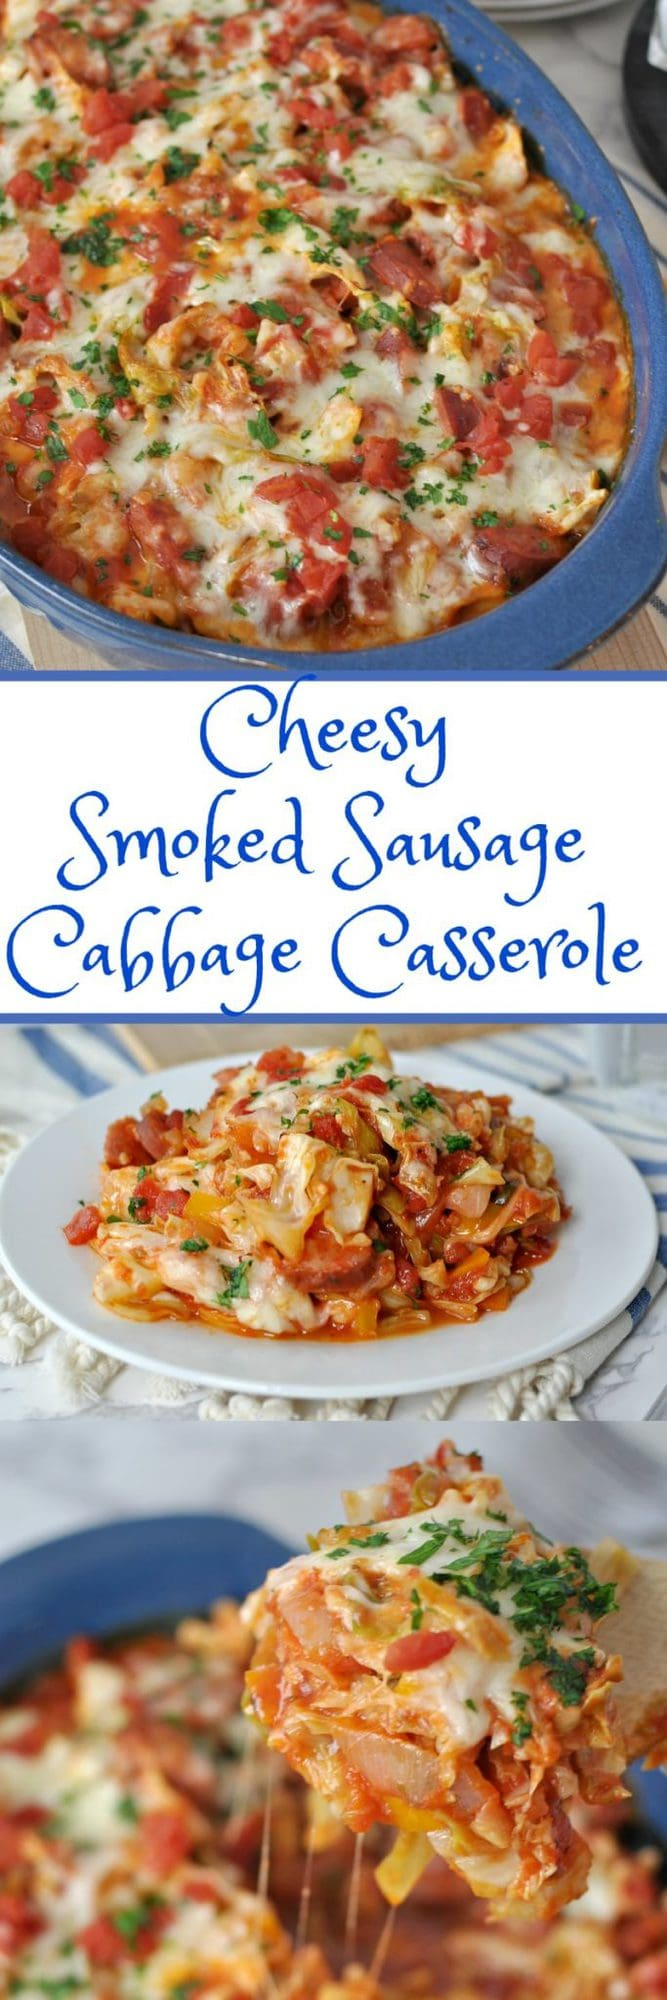 Cheesy Sausage and Cabbage Casserole   Peace Love and Low Carb